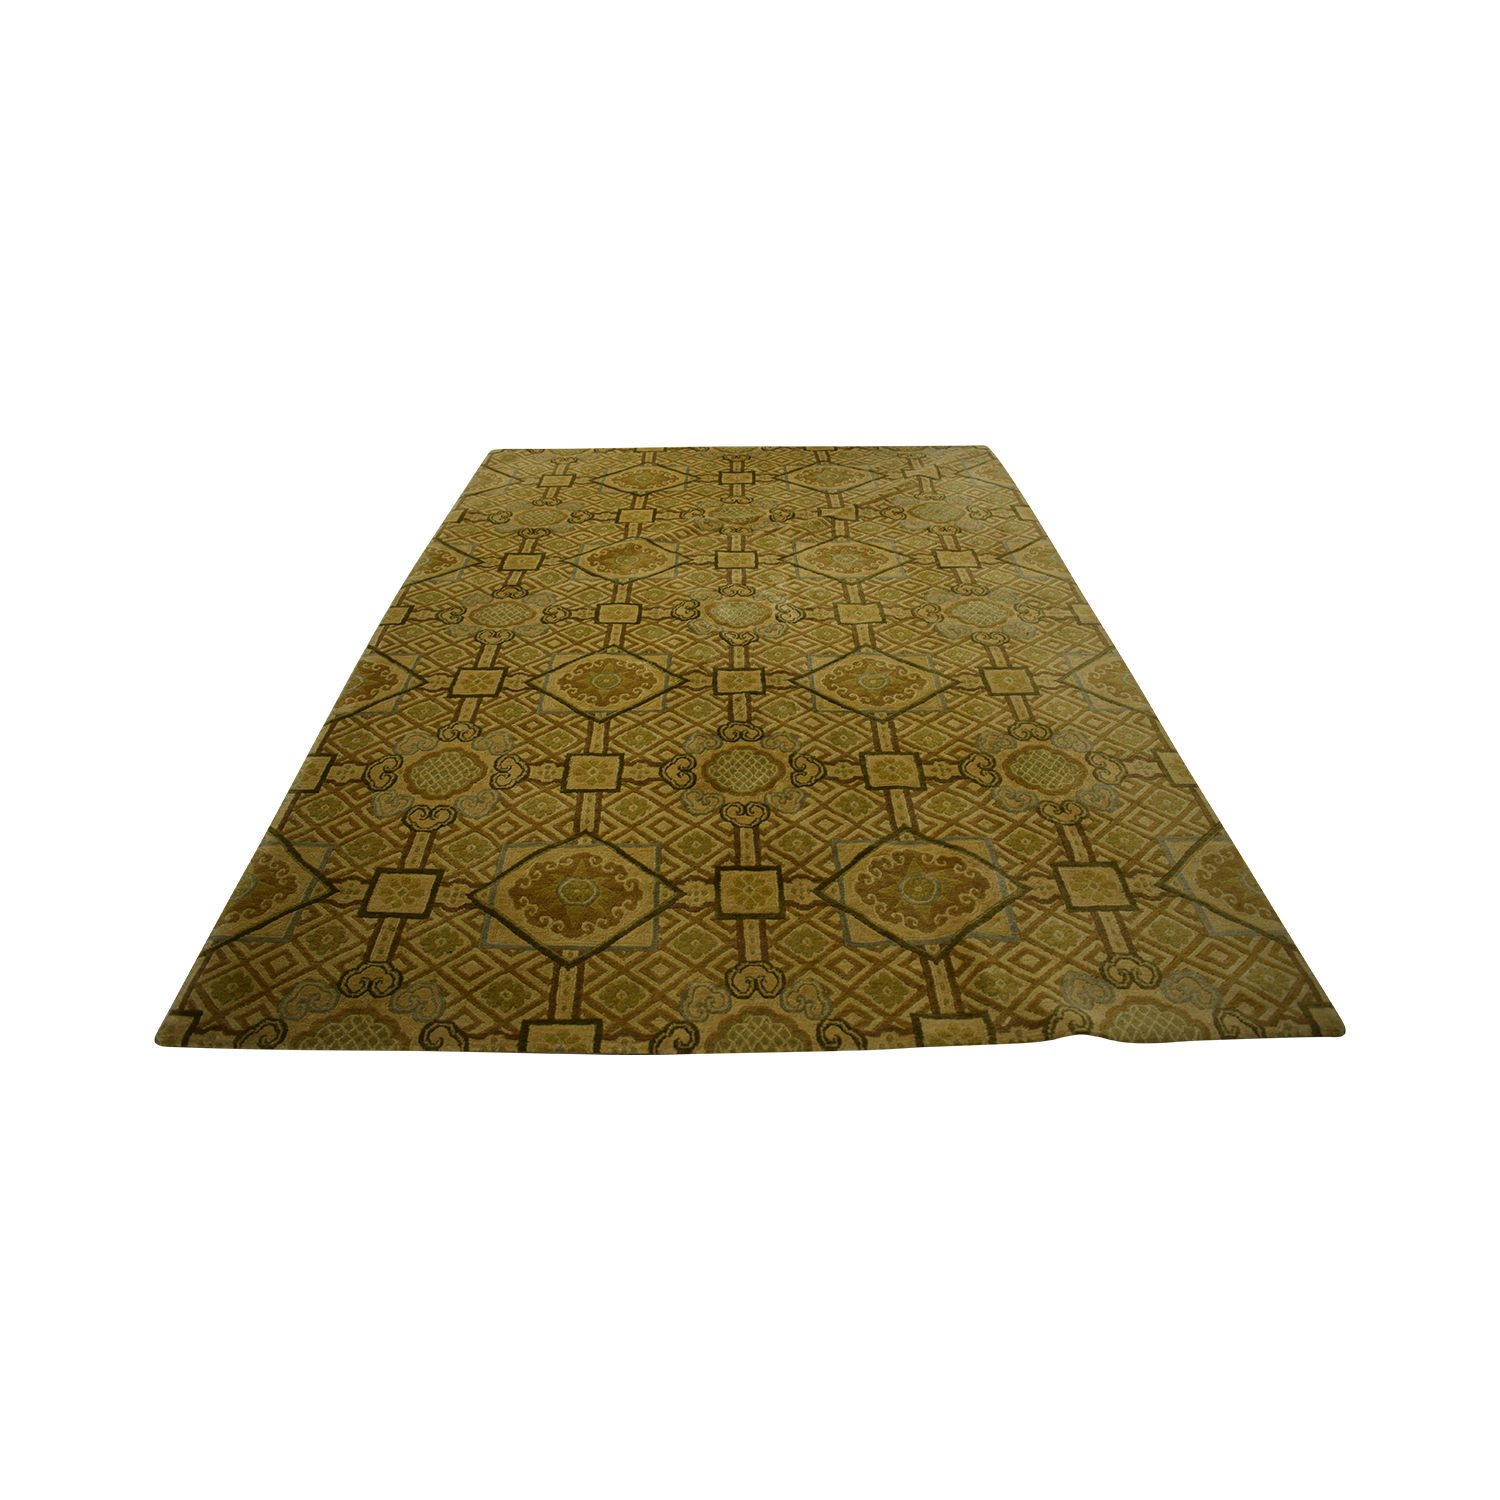 Noreen Seabrook Market Noreen Seabrook Market Bronze Multi-Colored Rug for sale